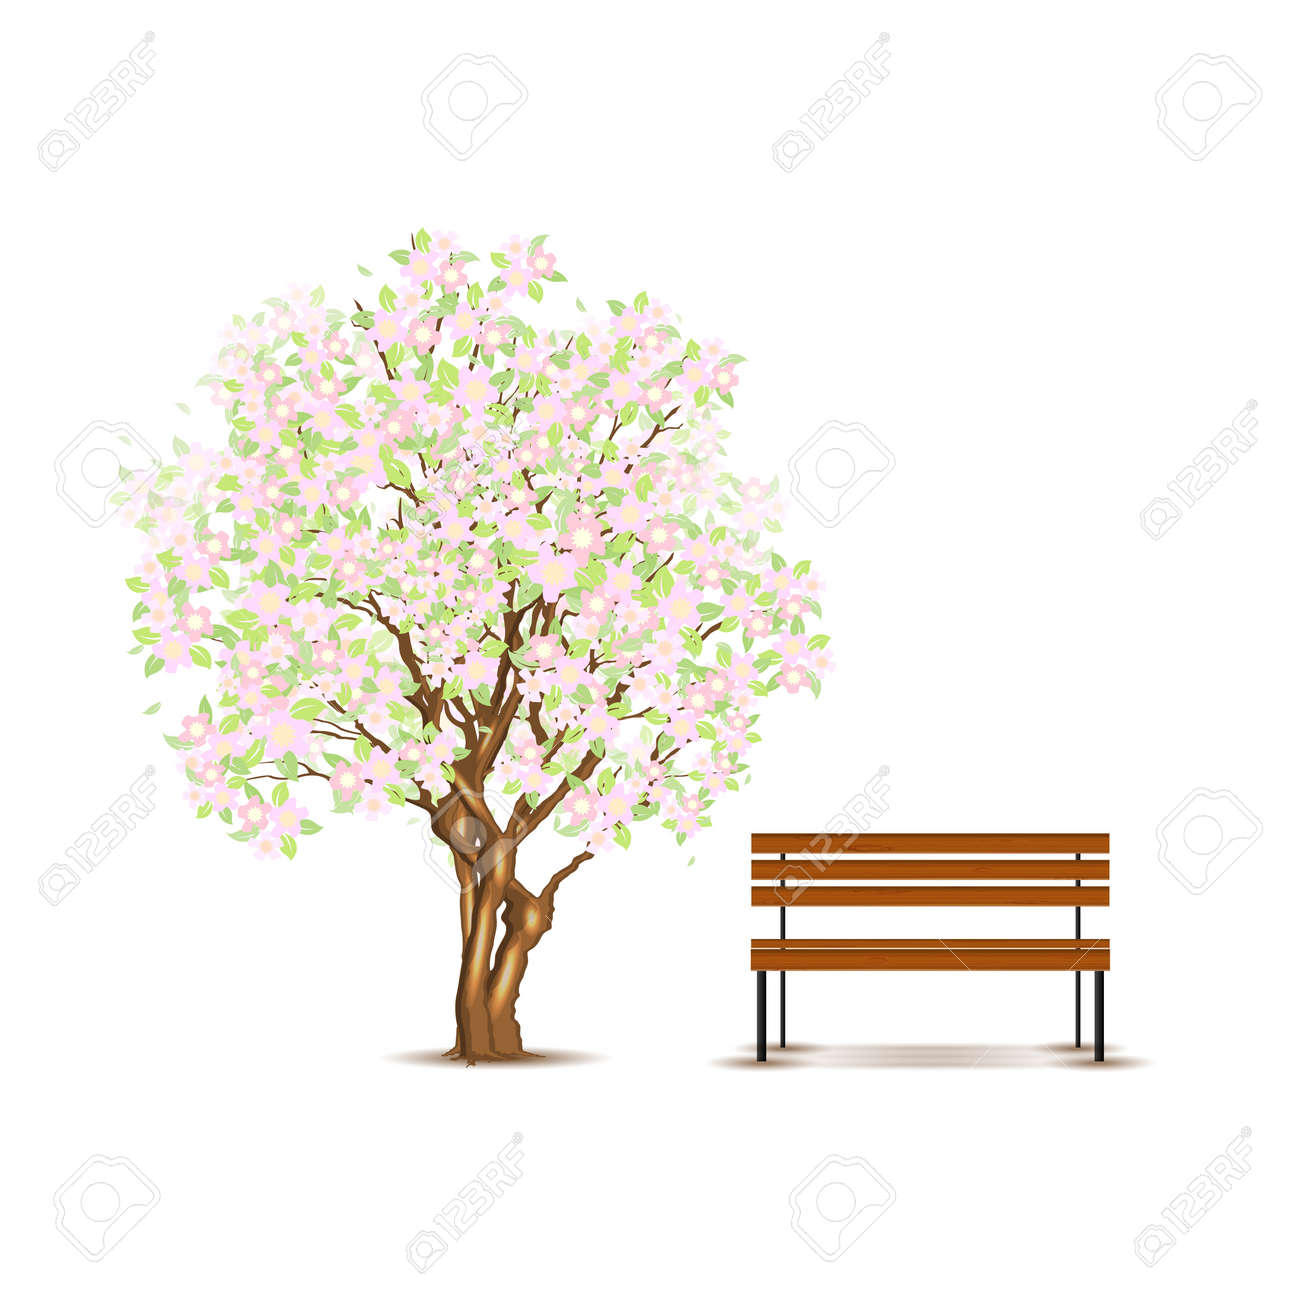 Traditional japanese tree and bench isolated on white Stock Vector - 13009336